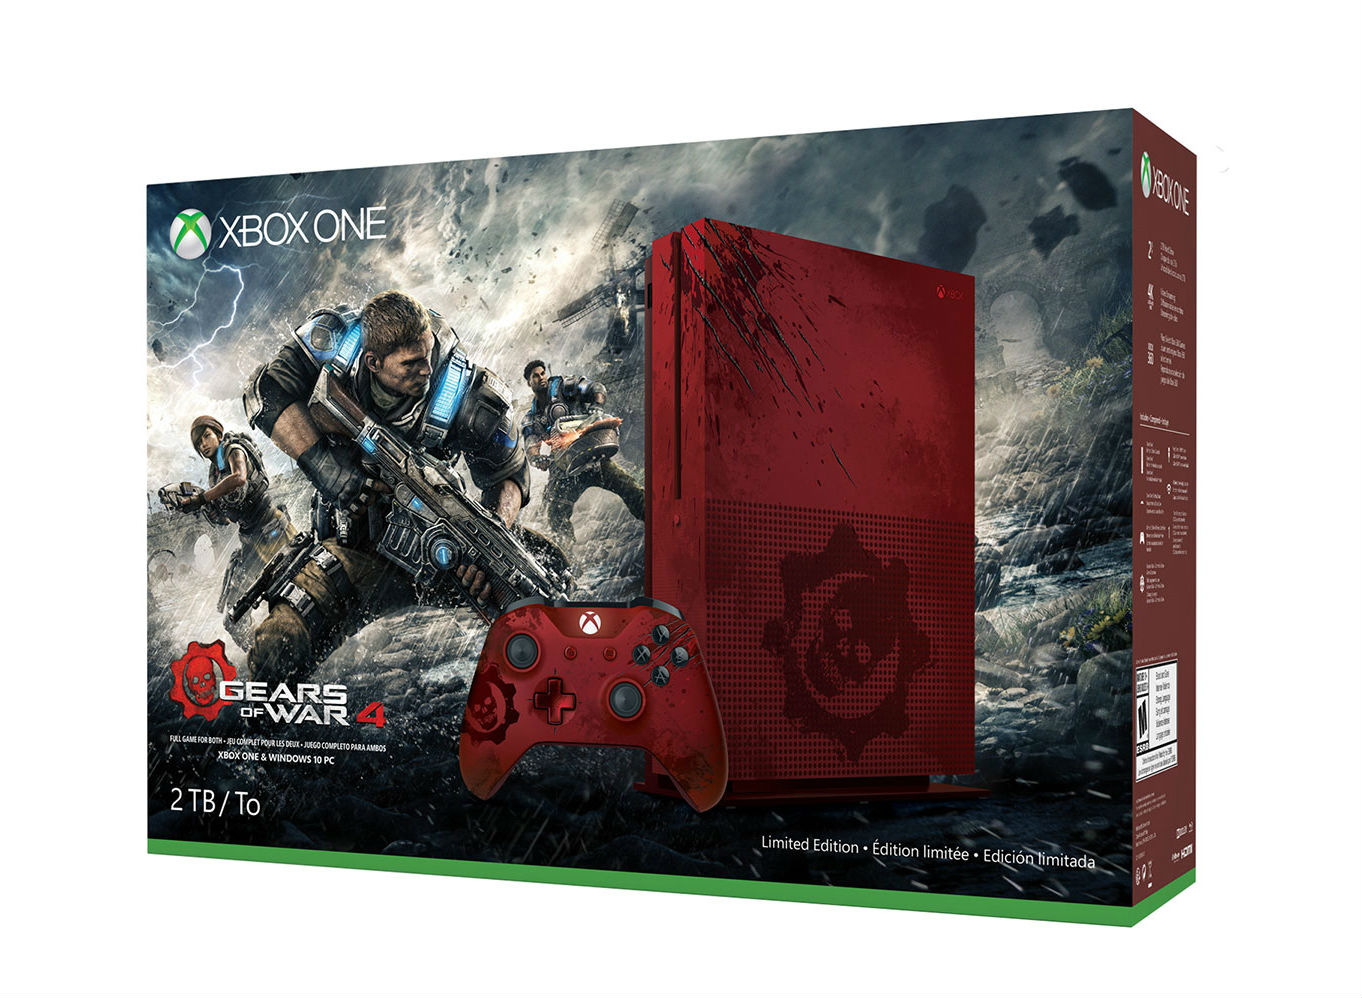 Xbox One S Gears Of War 4 Console Bundle Unboxing And